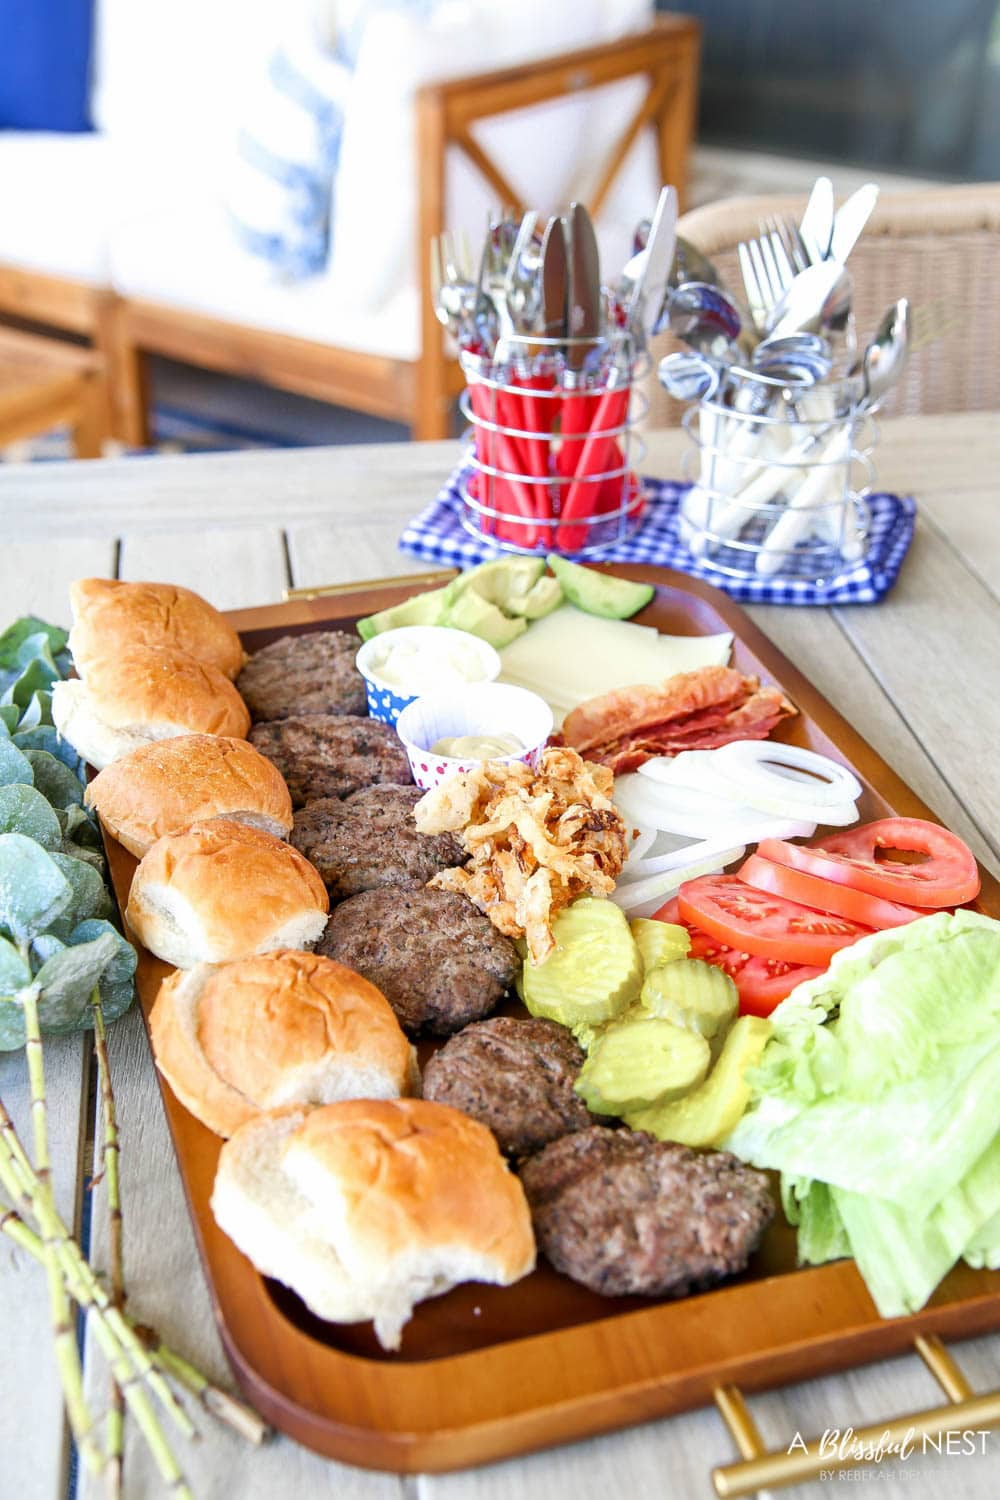 Make this epic summer hamburger charcuterie board with all these must-have ingredients. #ABlissfulNest #charcuterieboard #summerrecipe #summerfood